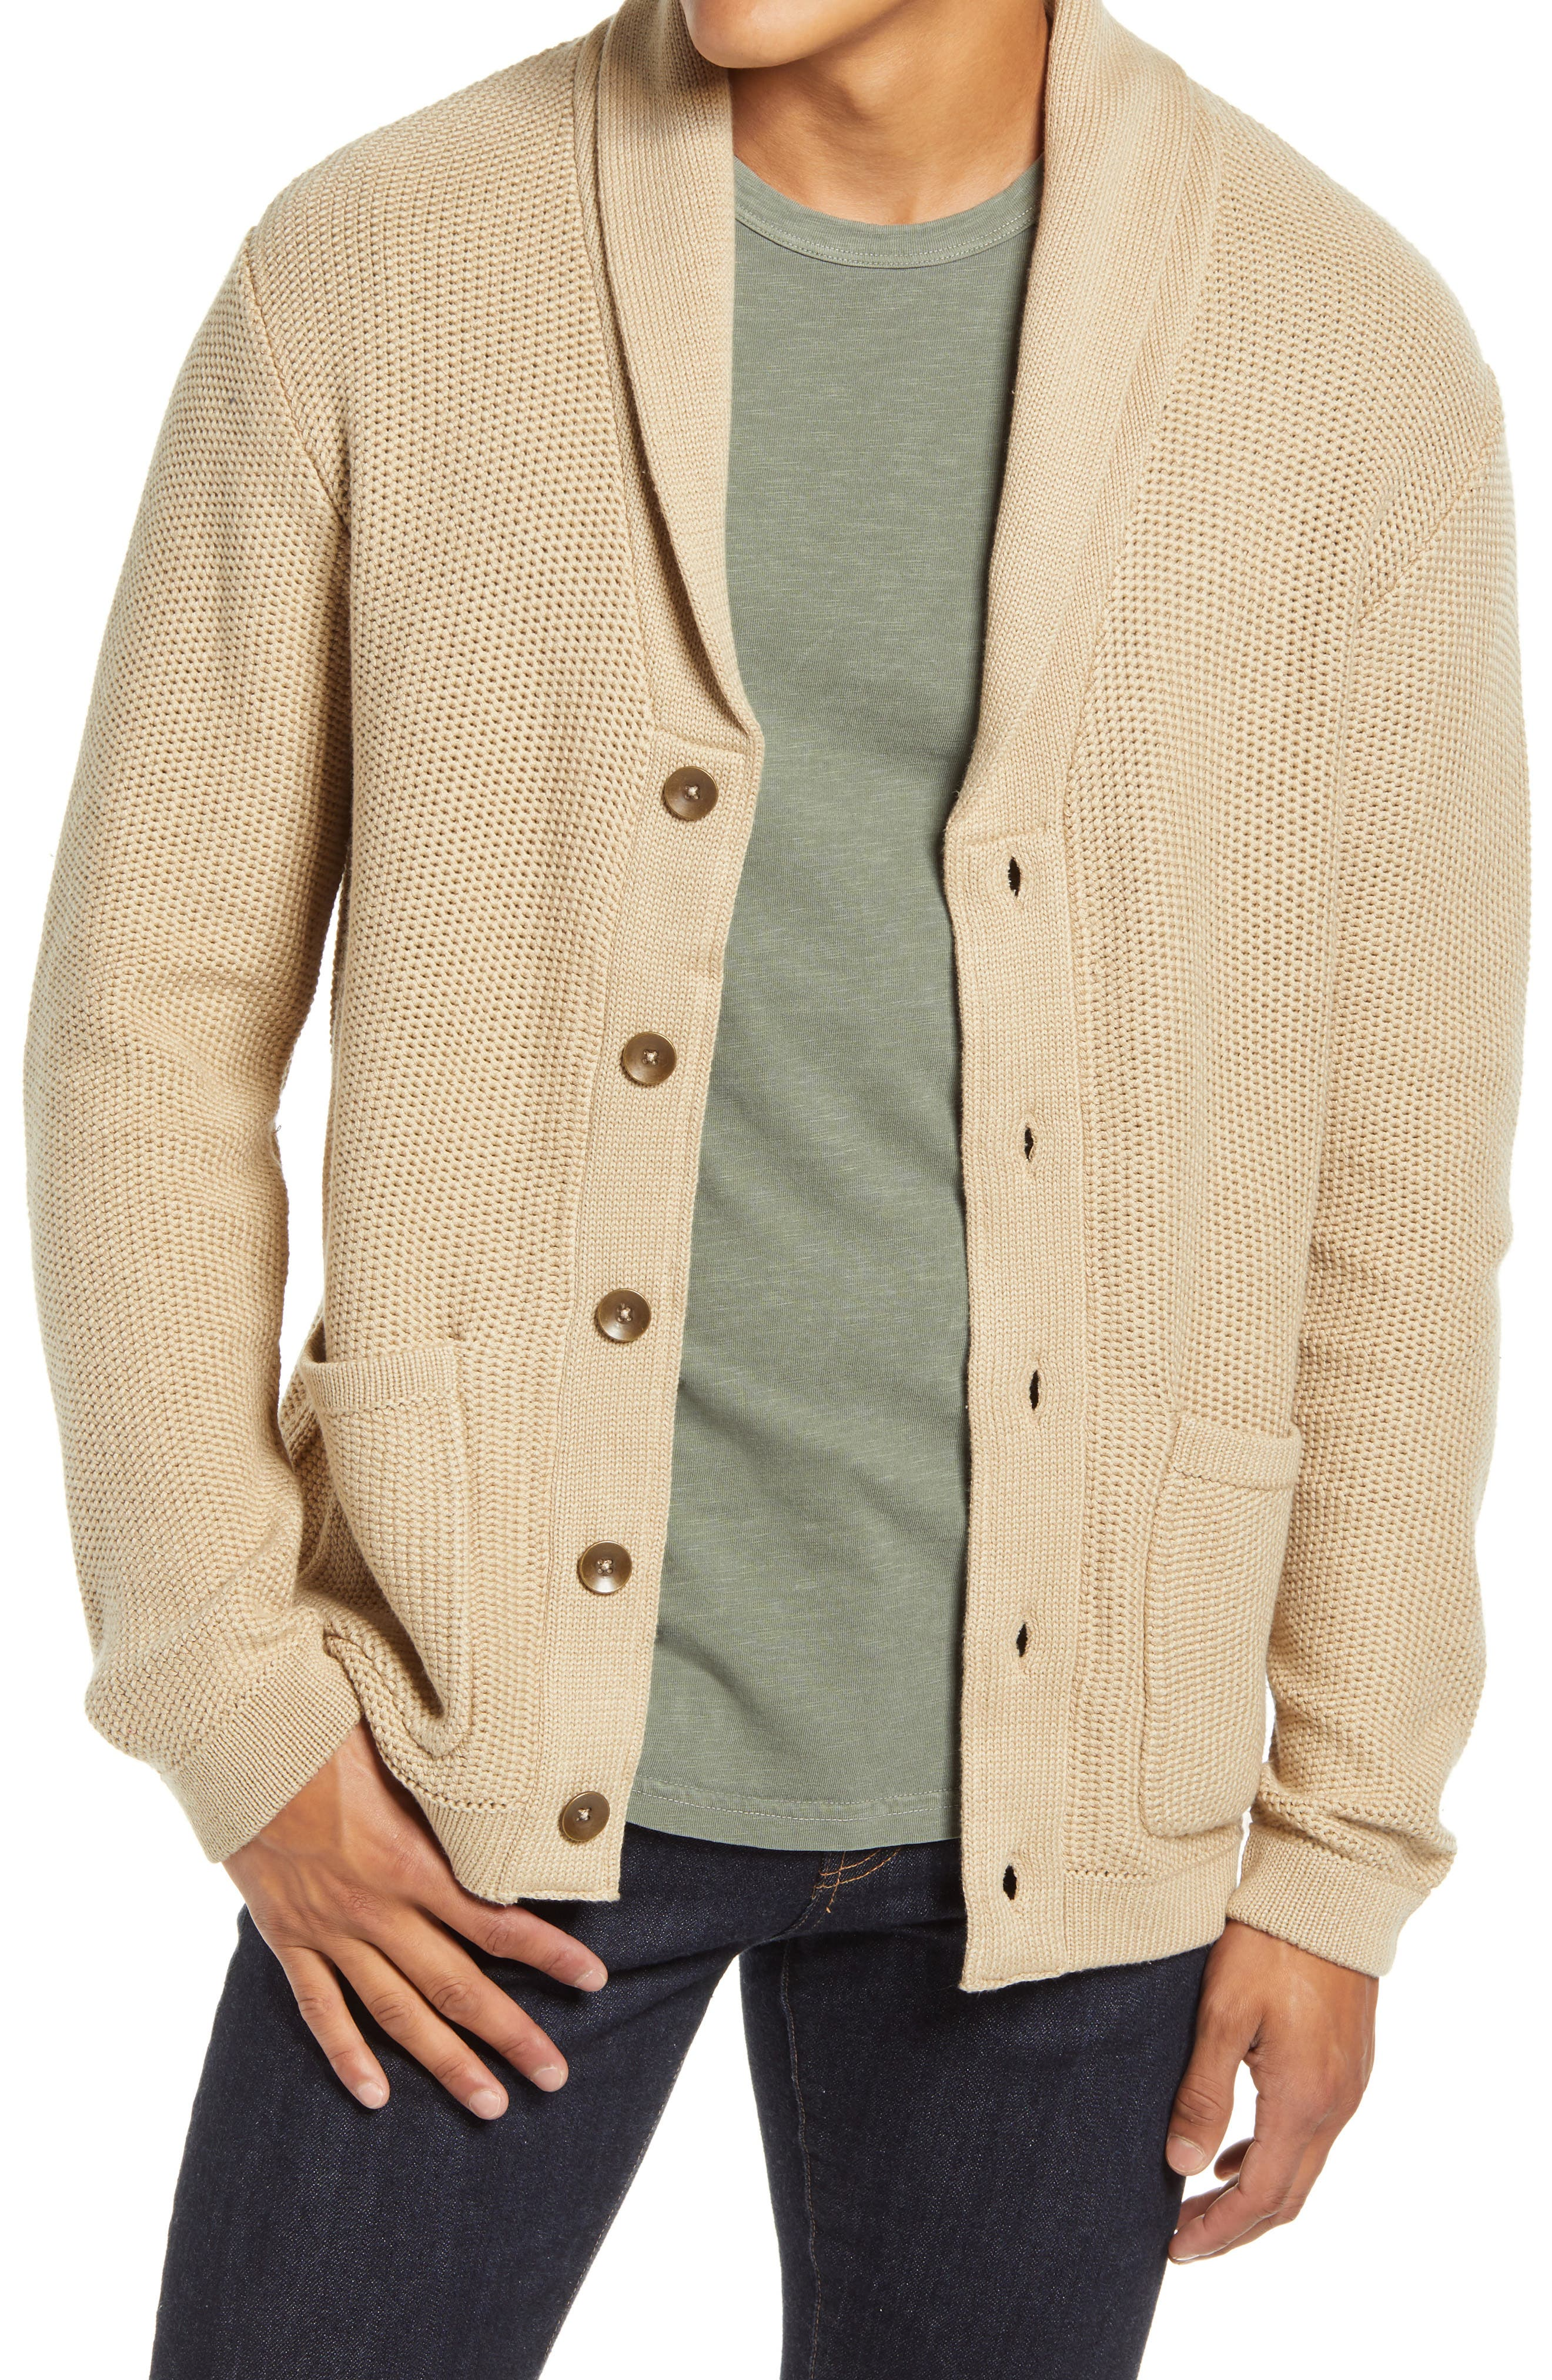 A shawl collar and roomy, layerable fit bring essential details to a cardigan crafted to keep you comfortable in the cold or by the fire with a bestseller. Style Name: Liverpool Shawl Collar Cardigan. Style Number: 6089000. Available in stores.